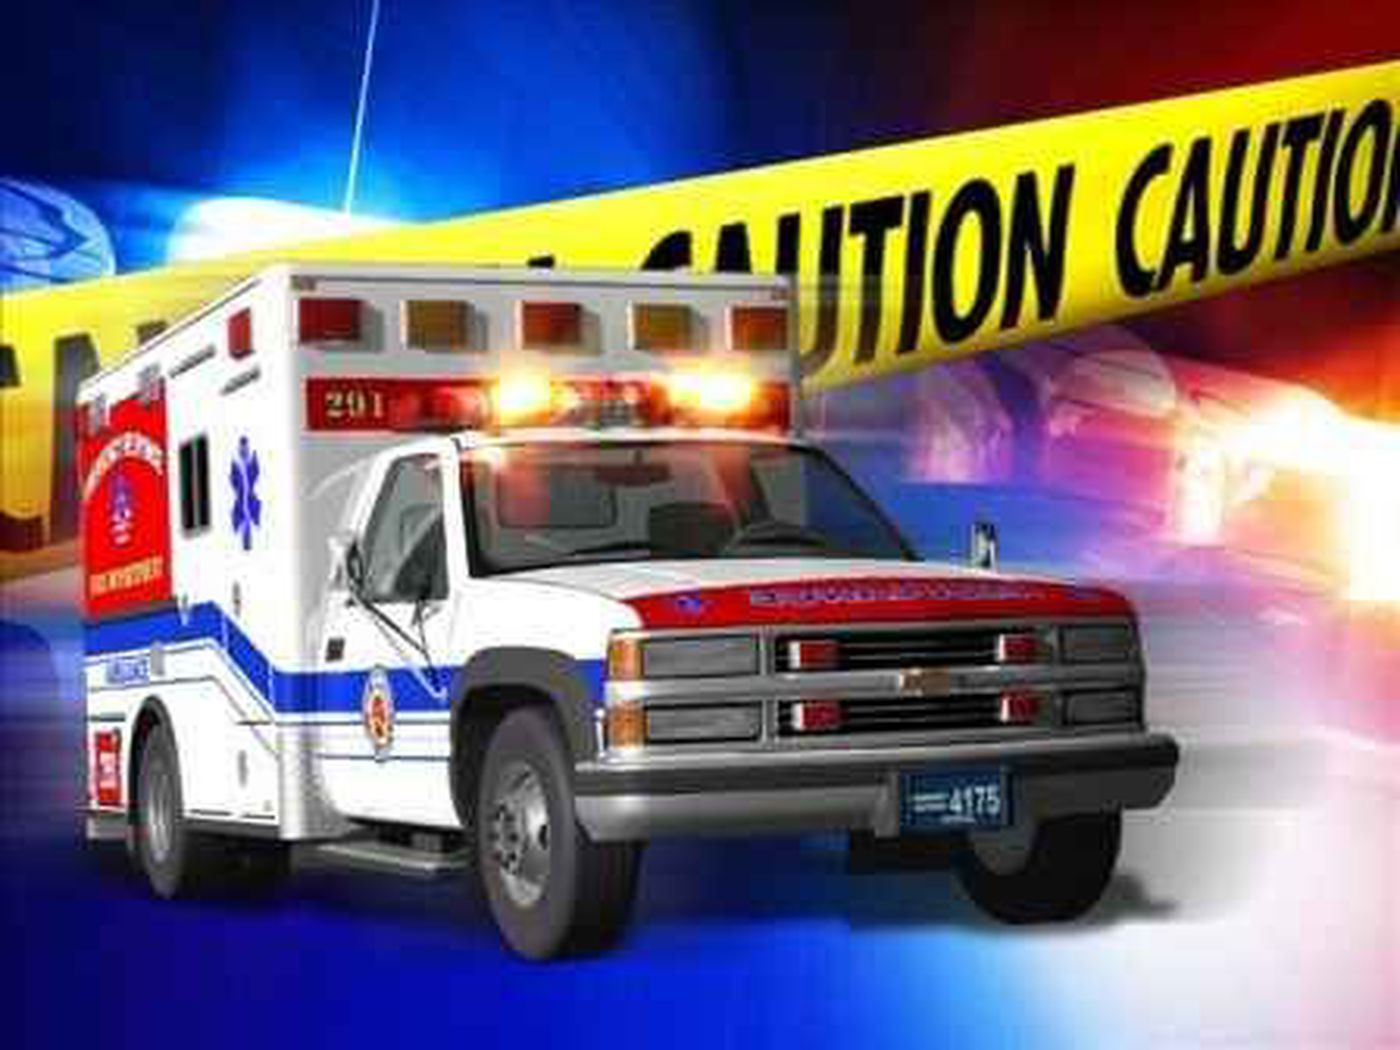 Fatal Camden accident under investigation